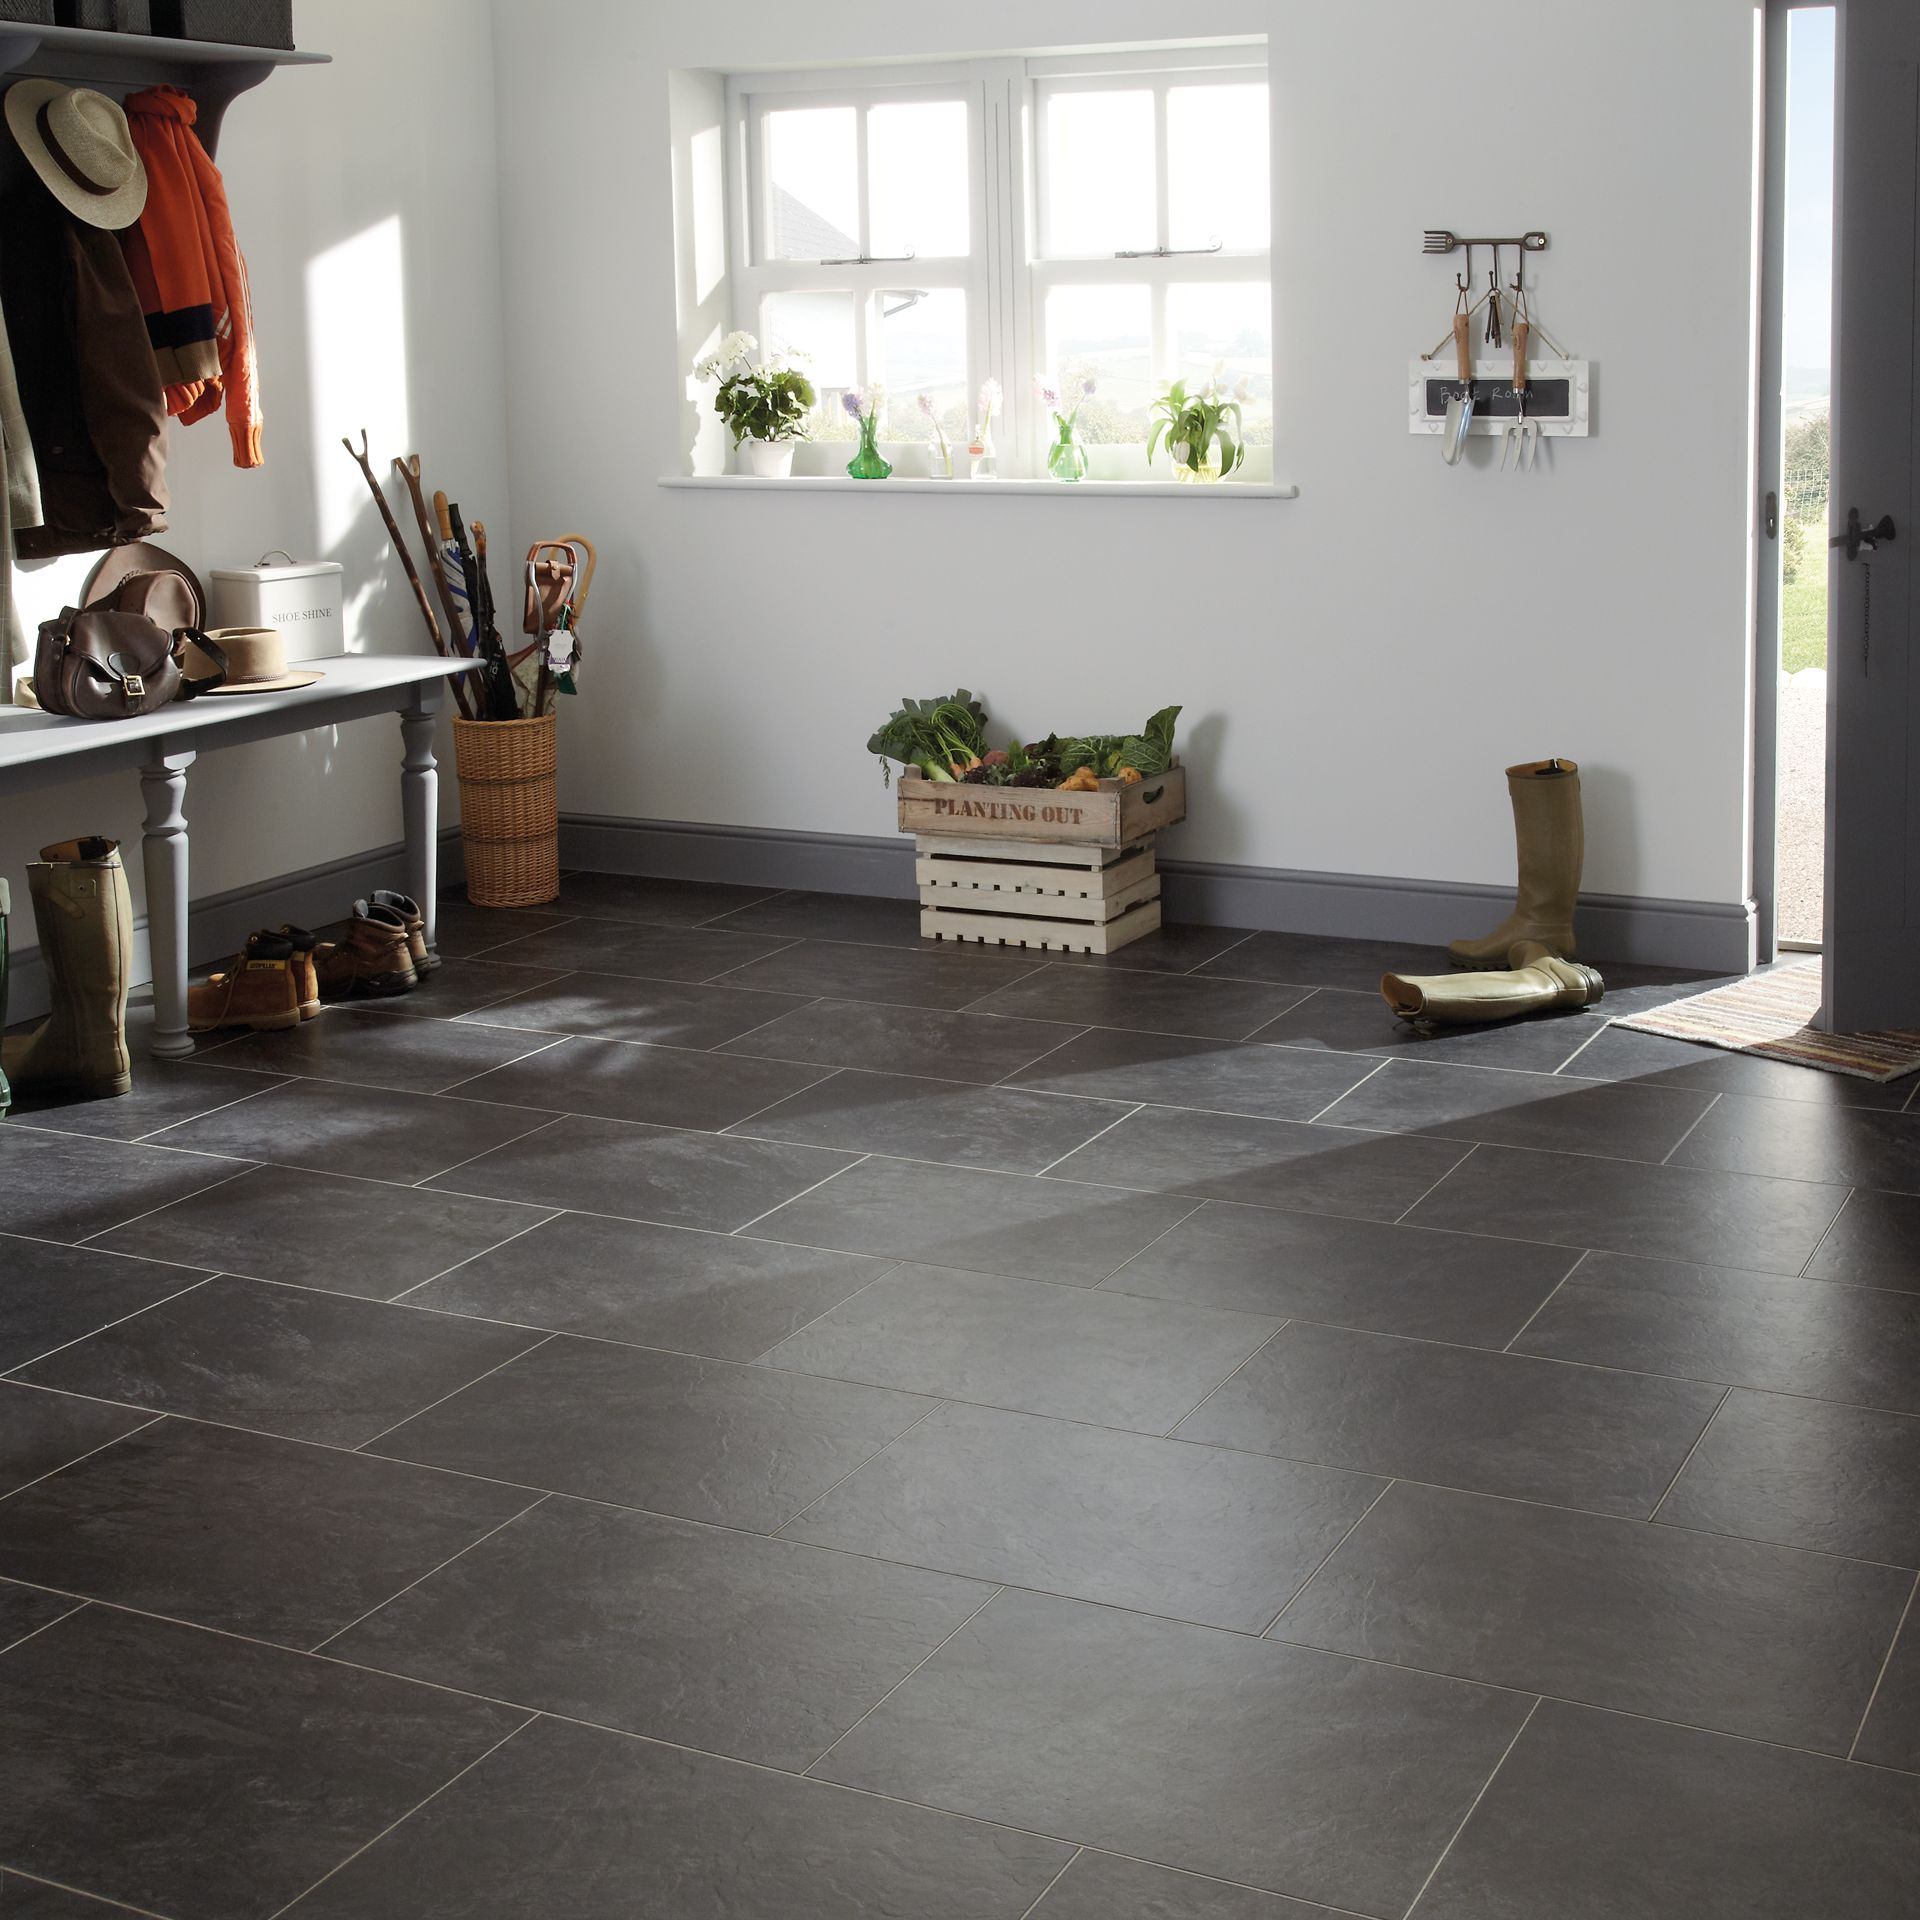 Stone effect vinyl flooring tiles downstairs bathroom pinterest stone effect vinyl flooring tiles dailygadgetfo Gallery